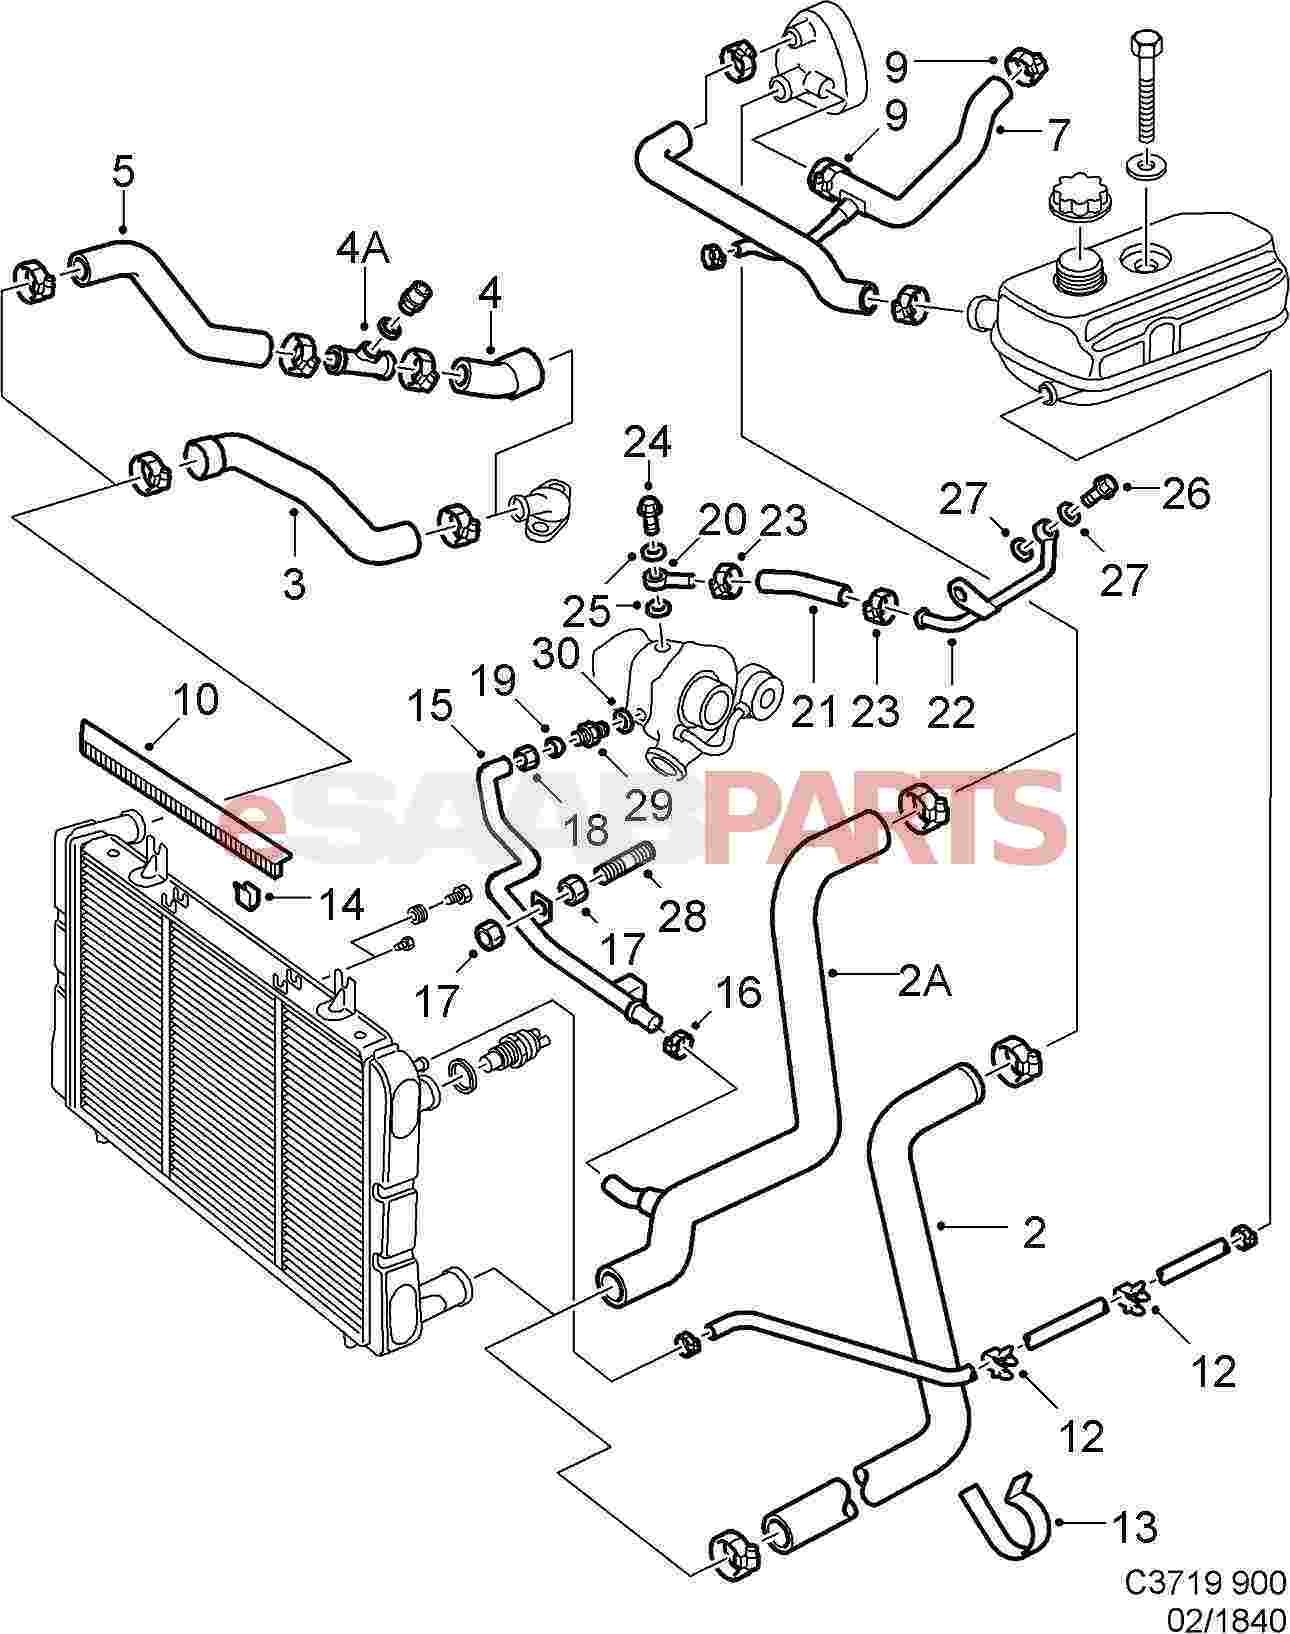 Saab Turbo Engine Diagram Trusted Wiring Diagrams Automotive U2022 Rh Wiringblog Today 93